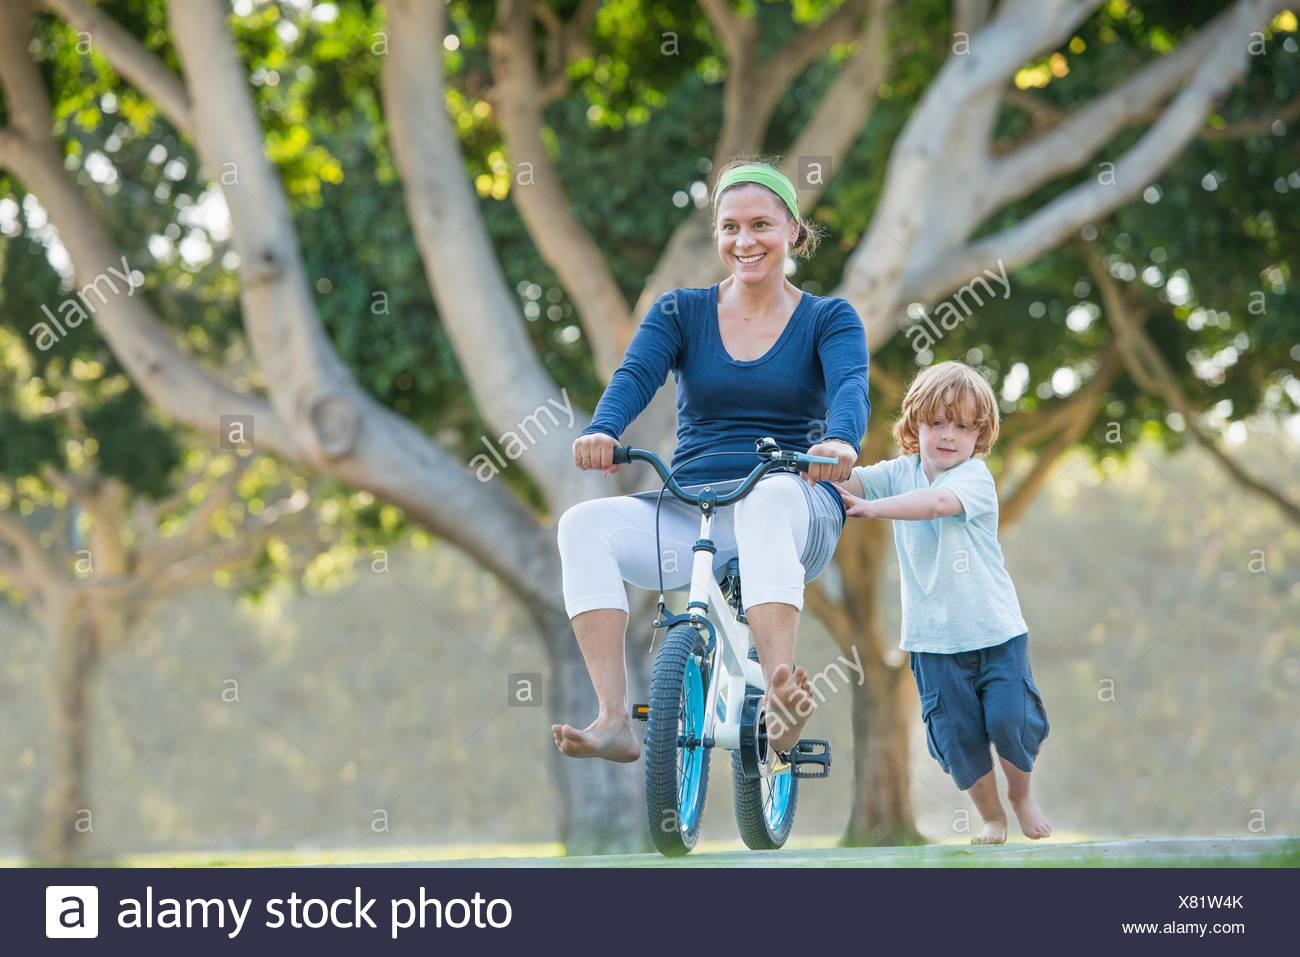 Mother sitting on son's bike, son pushing her along Stock Photo